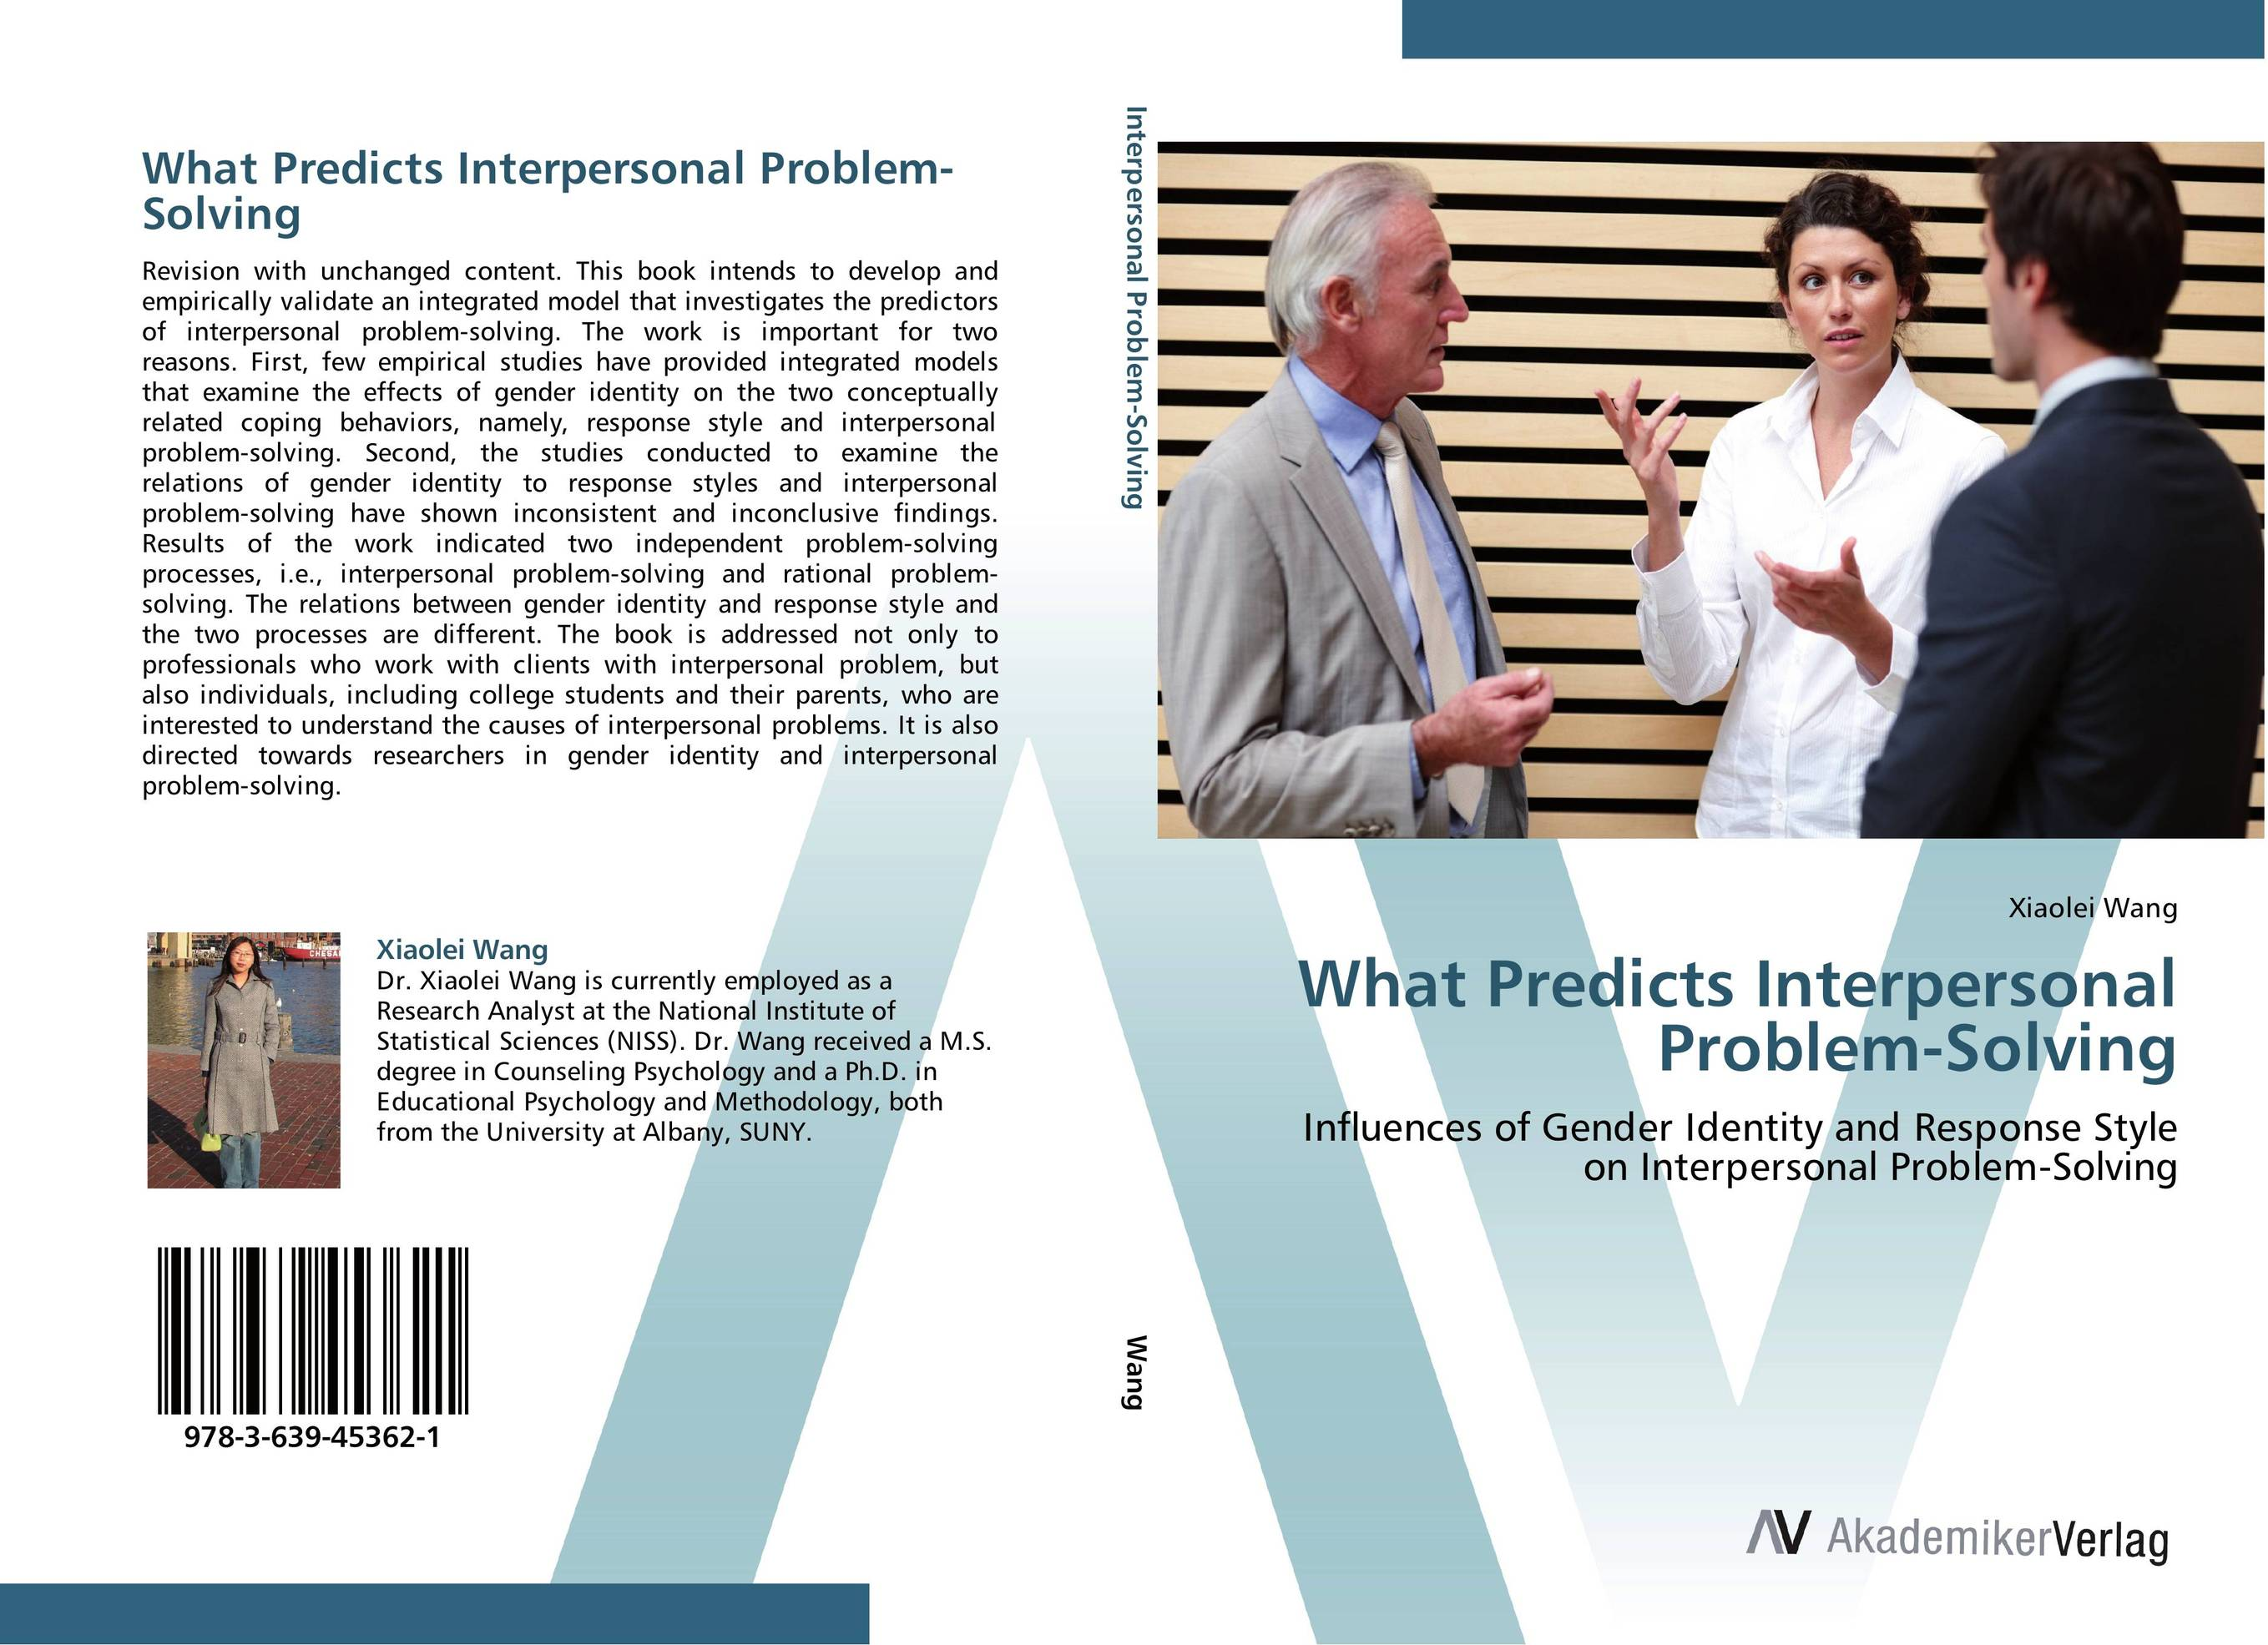 What Predicts Interpersonal Problem-Solving gender identity and place